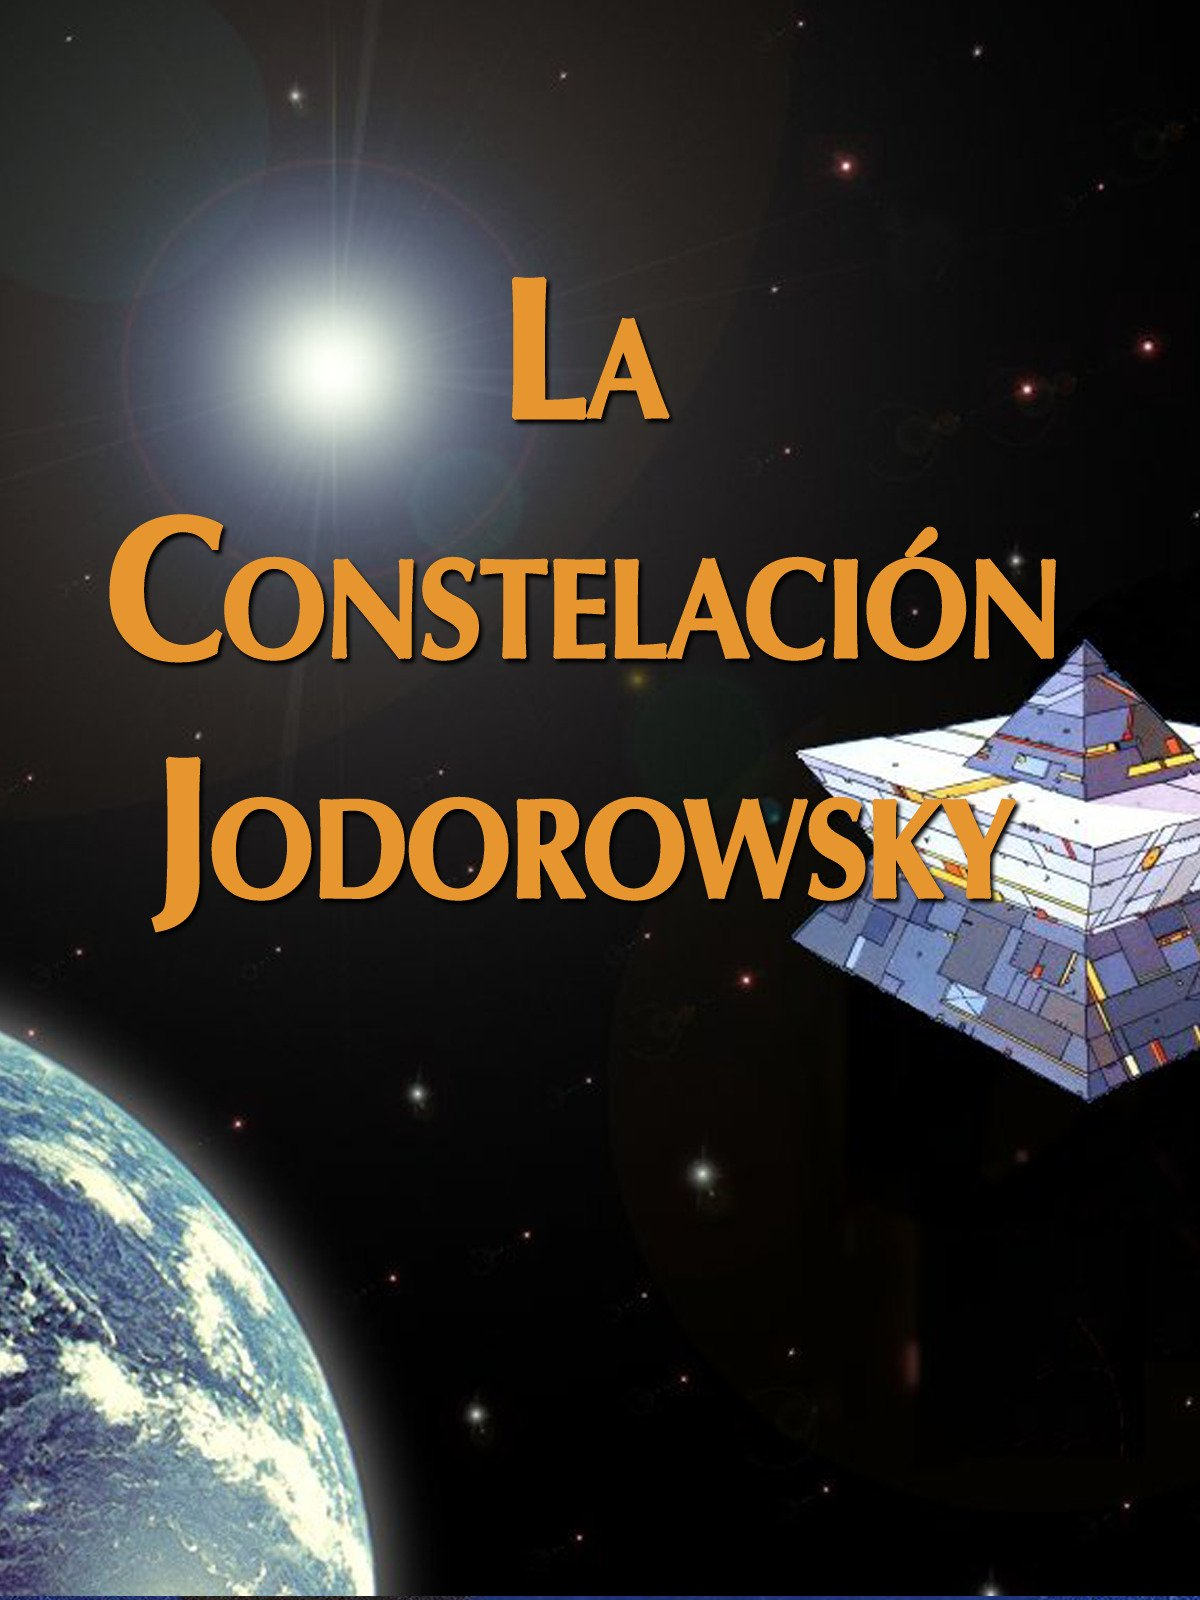 Jodorowsky Constellation - Spanish